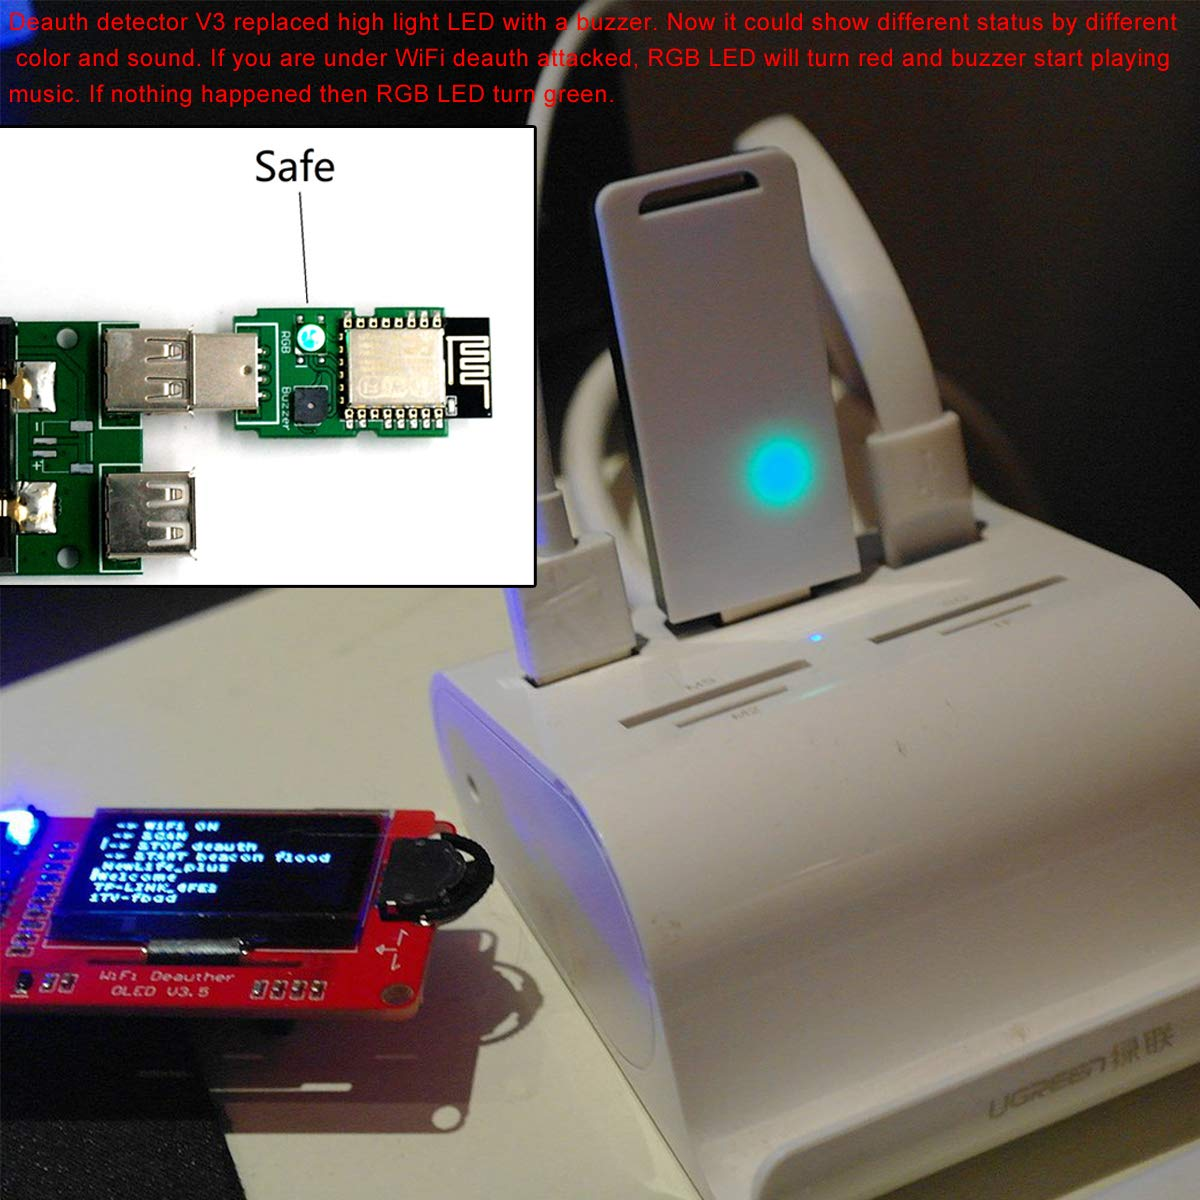 MakerFocus ESP8266 WiFi Deauth Detector V3 (Pre-flashed) with Buzzer RGB LED